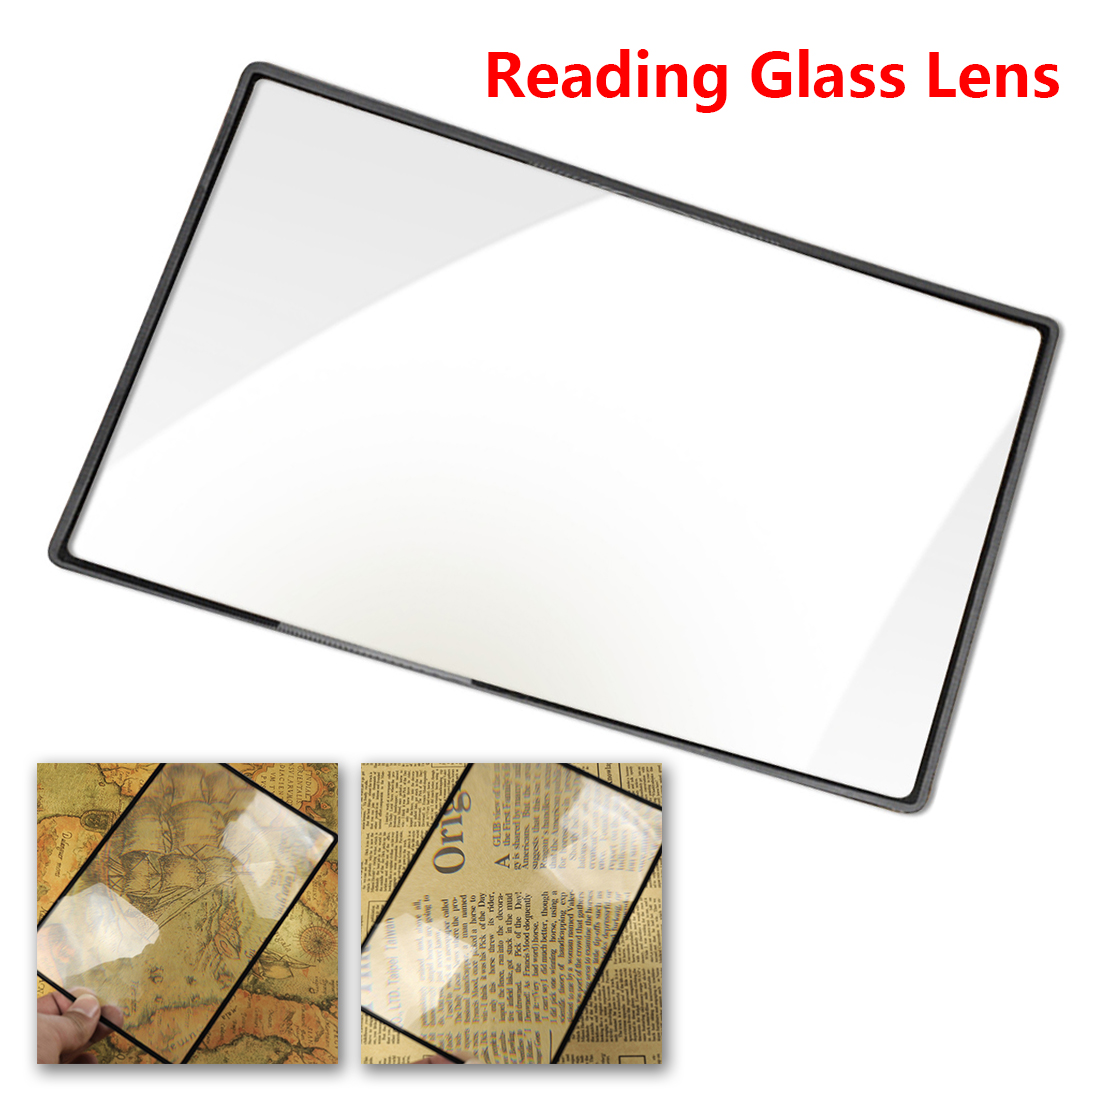 Reading Glass Lens 180X120mm Convinient A5 Flat PVC Magnifier Sheet X3 Book Page Magnification Magnifying